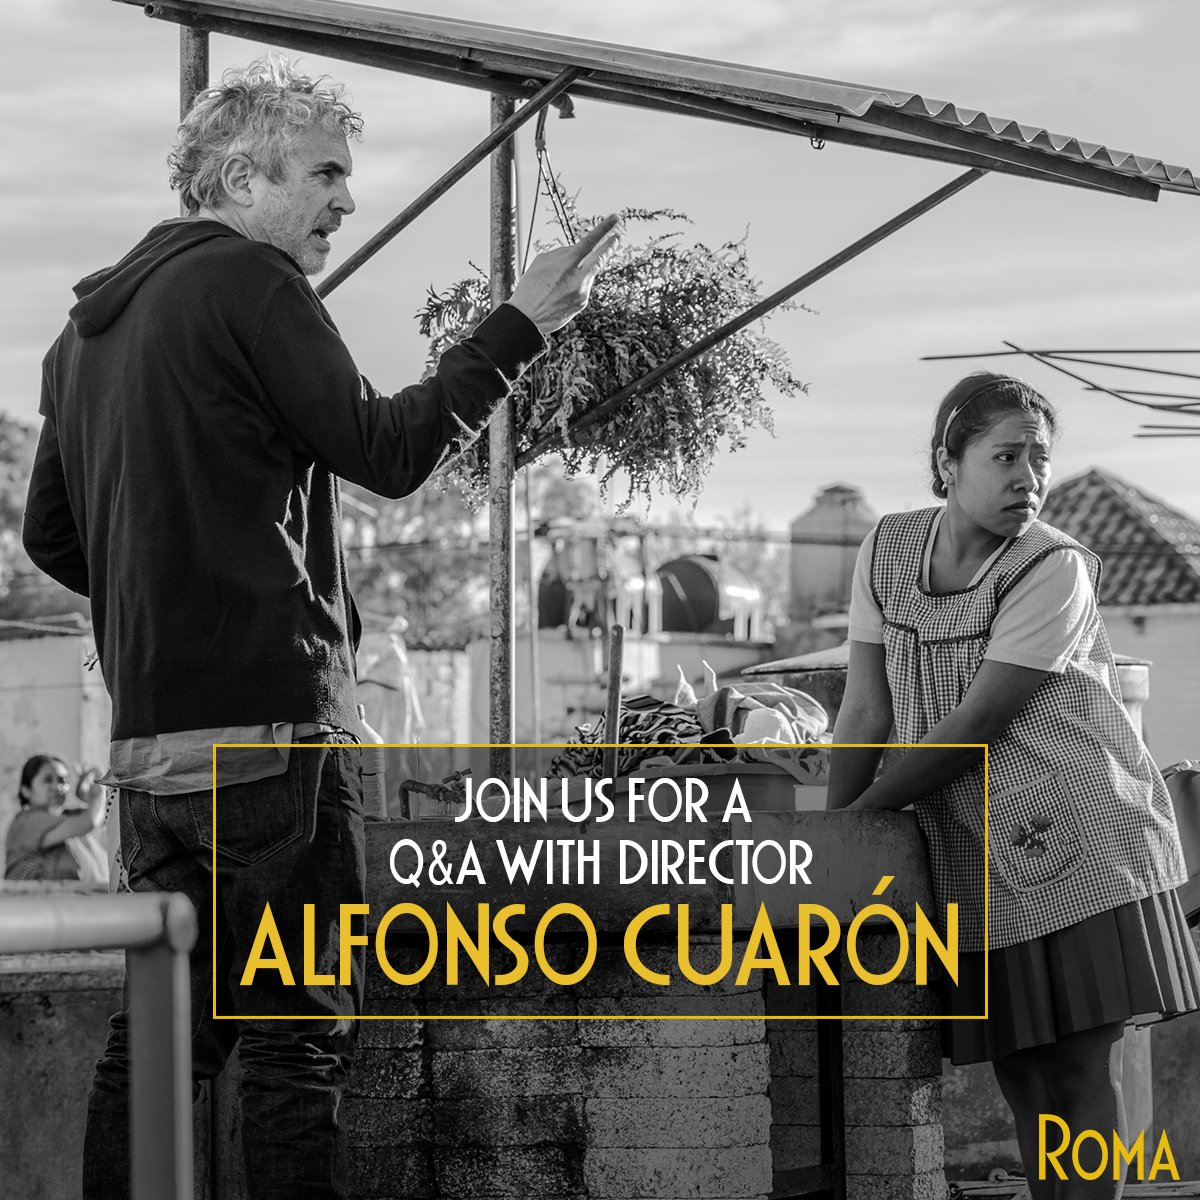 Roma On Twitter Director Alfonso Cuaron Will Participate In Two